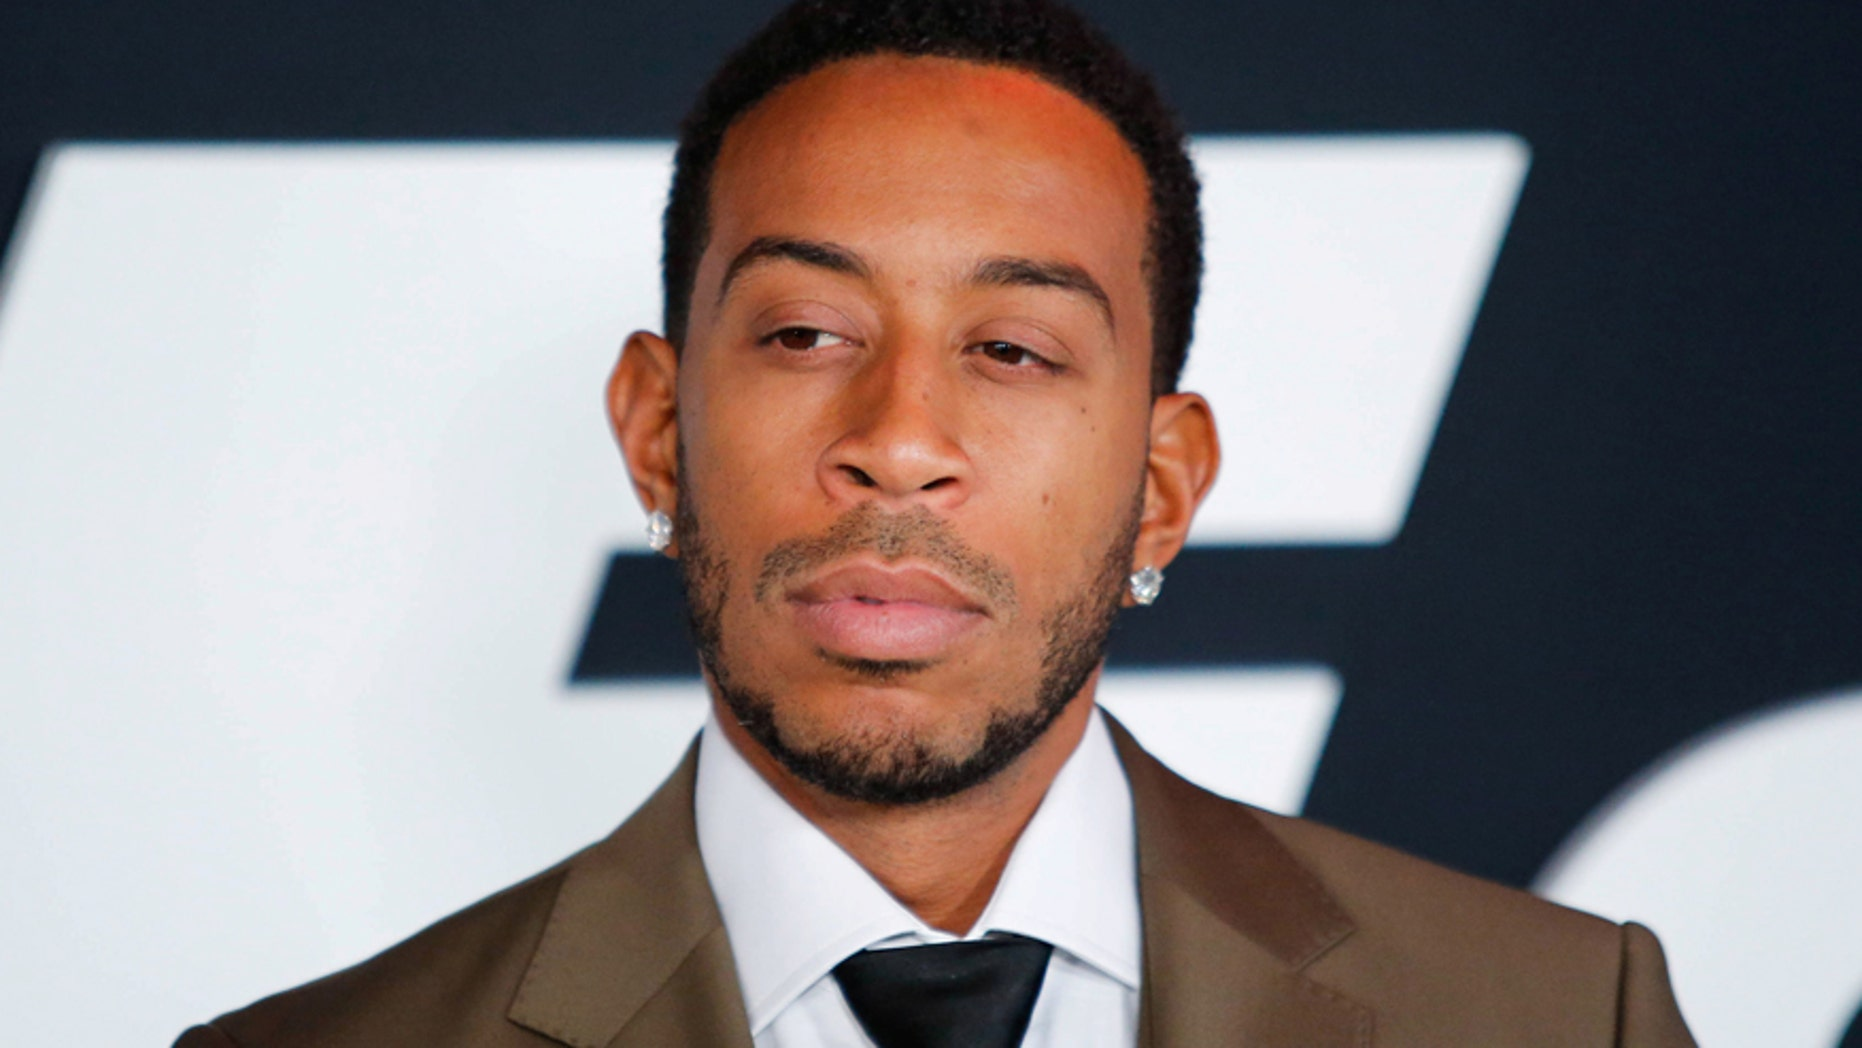 Actor Ludacris attends 'The Fate Of The Furious' New York premiere at Radio City Music Hall in New York, U.S. April 8, 2017.